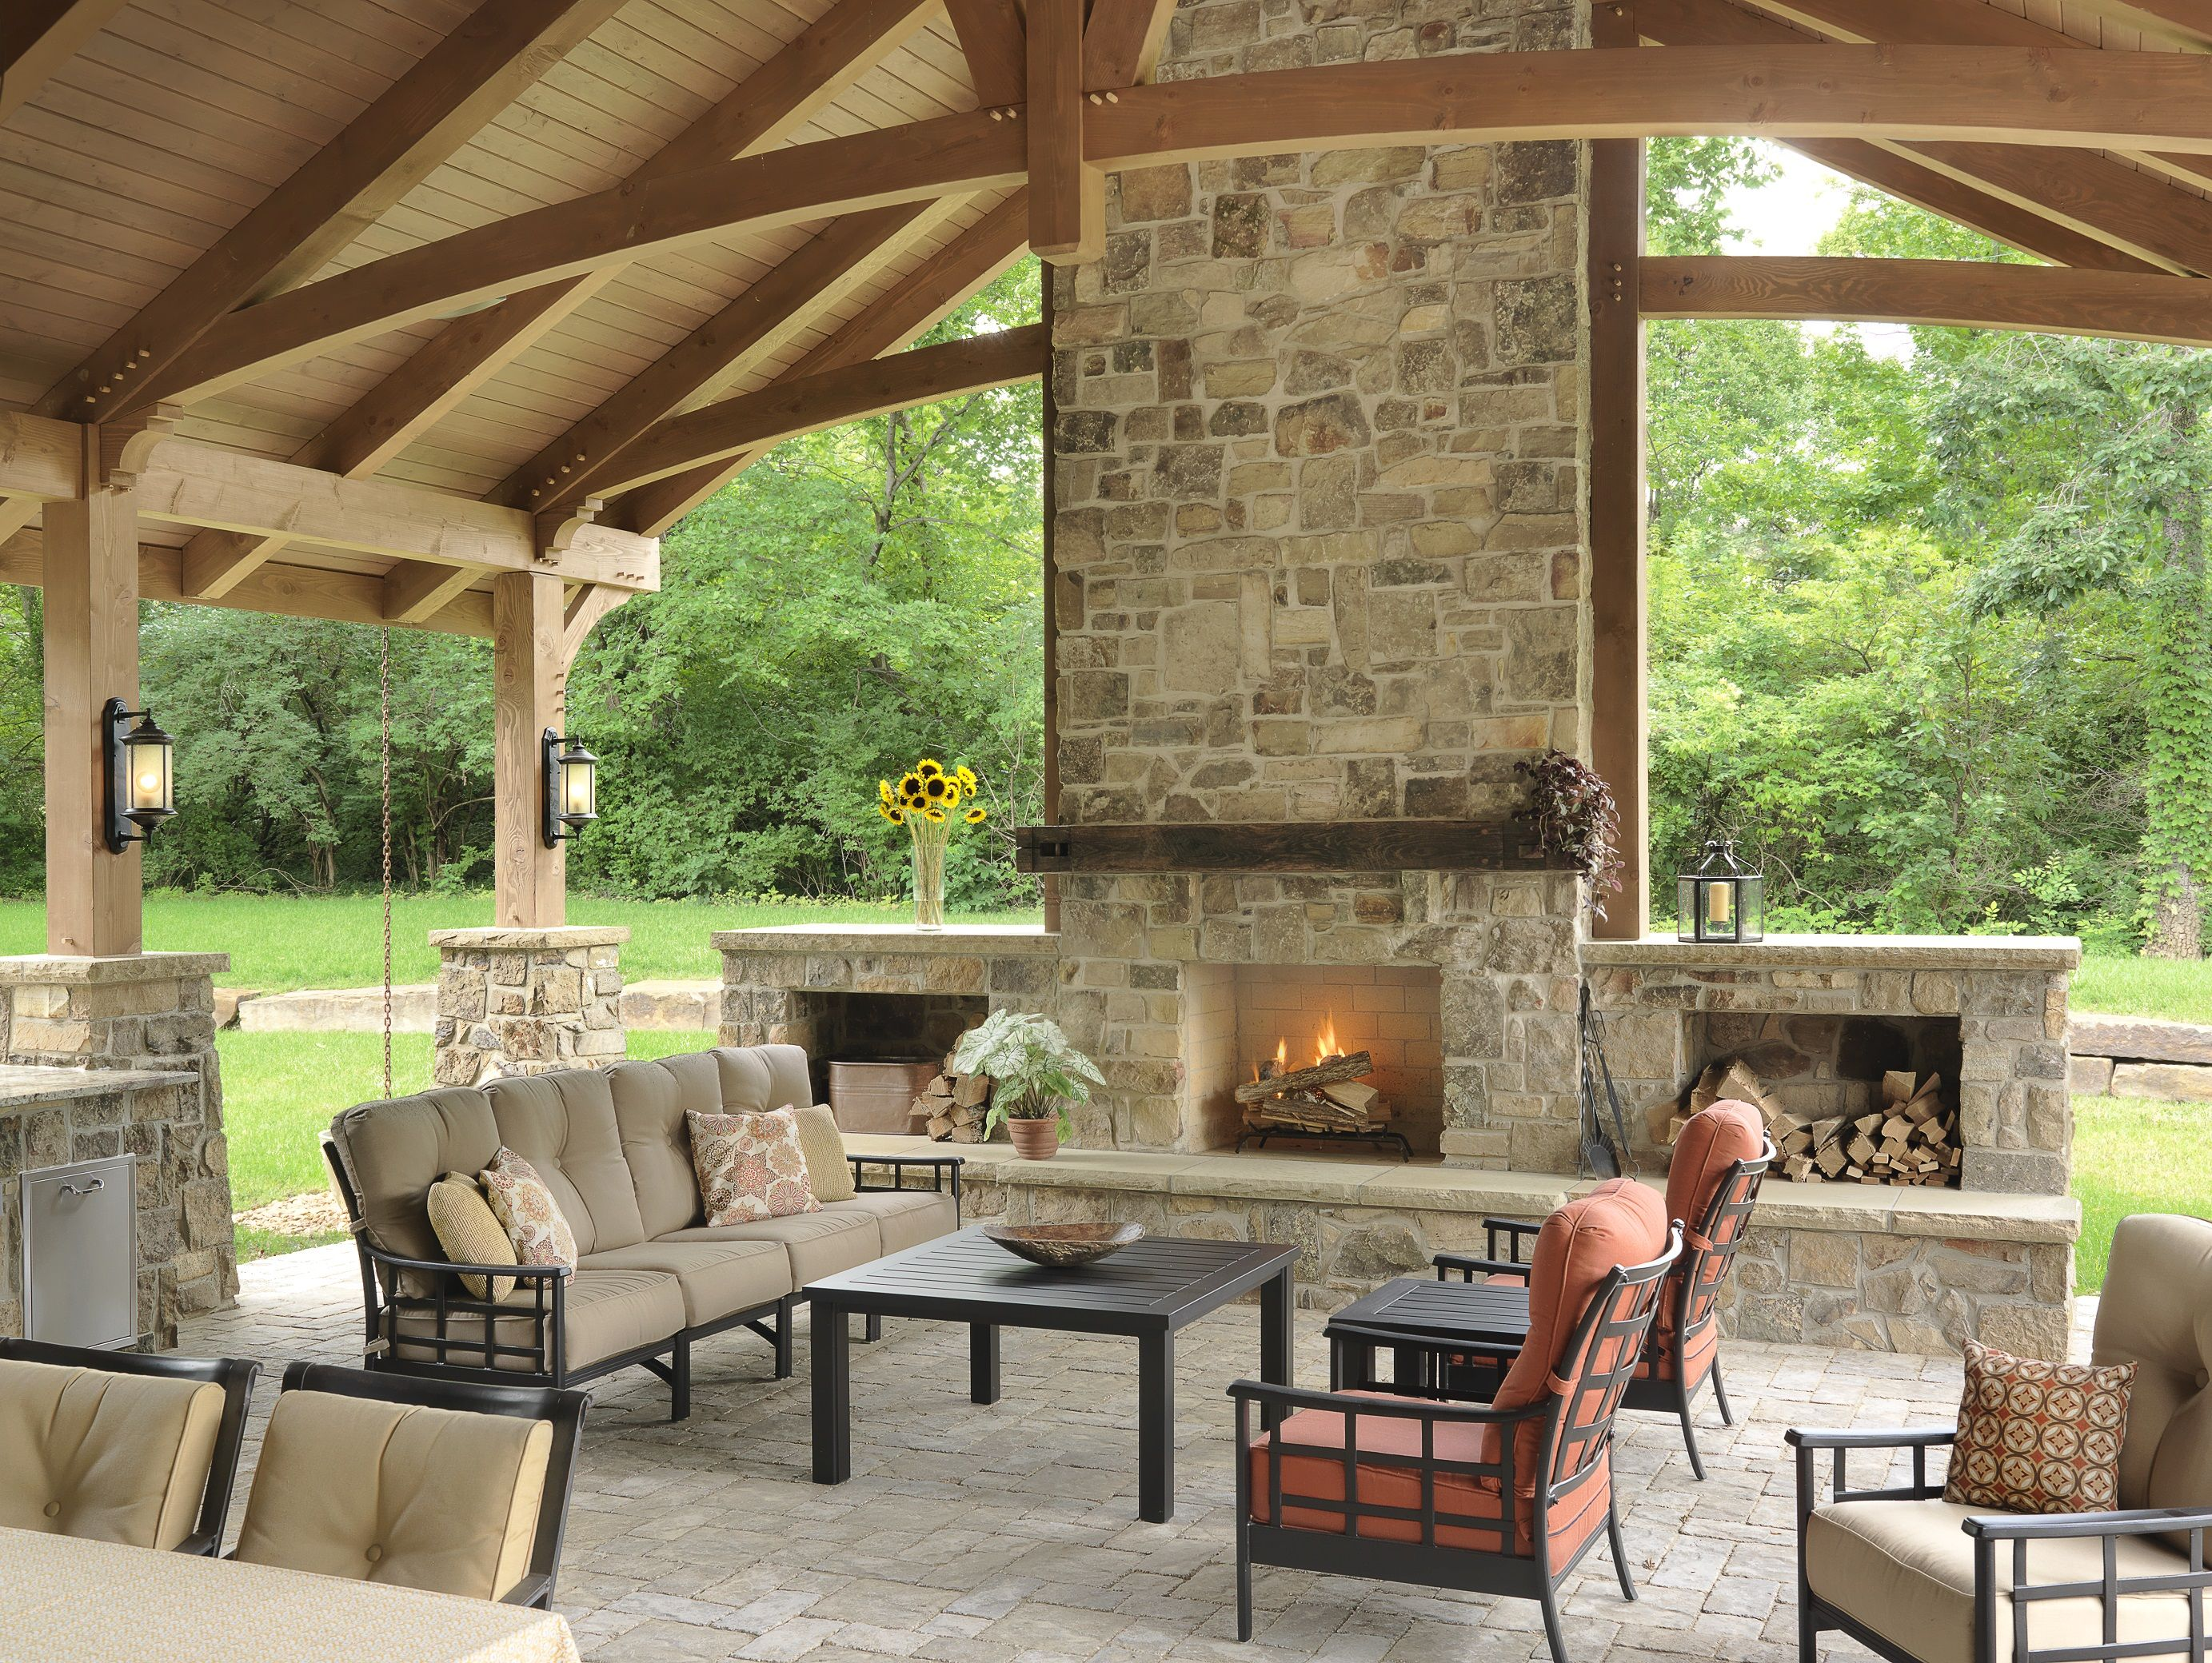 The Outdoor Living Space Includes Fabulous Millwork, A Beautiful Stone  Fireplace Which Complements The Interior